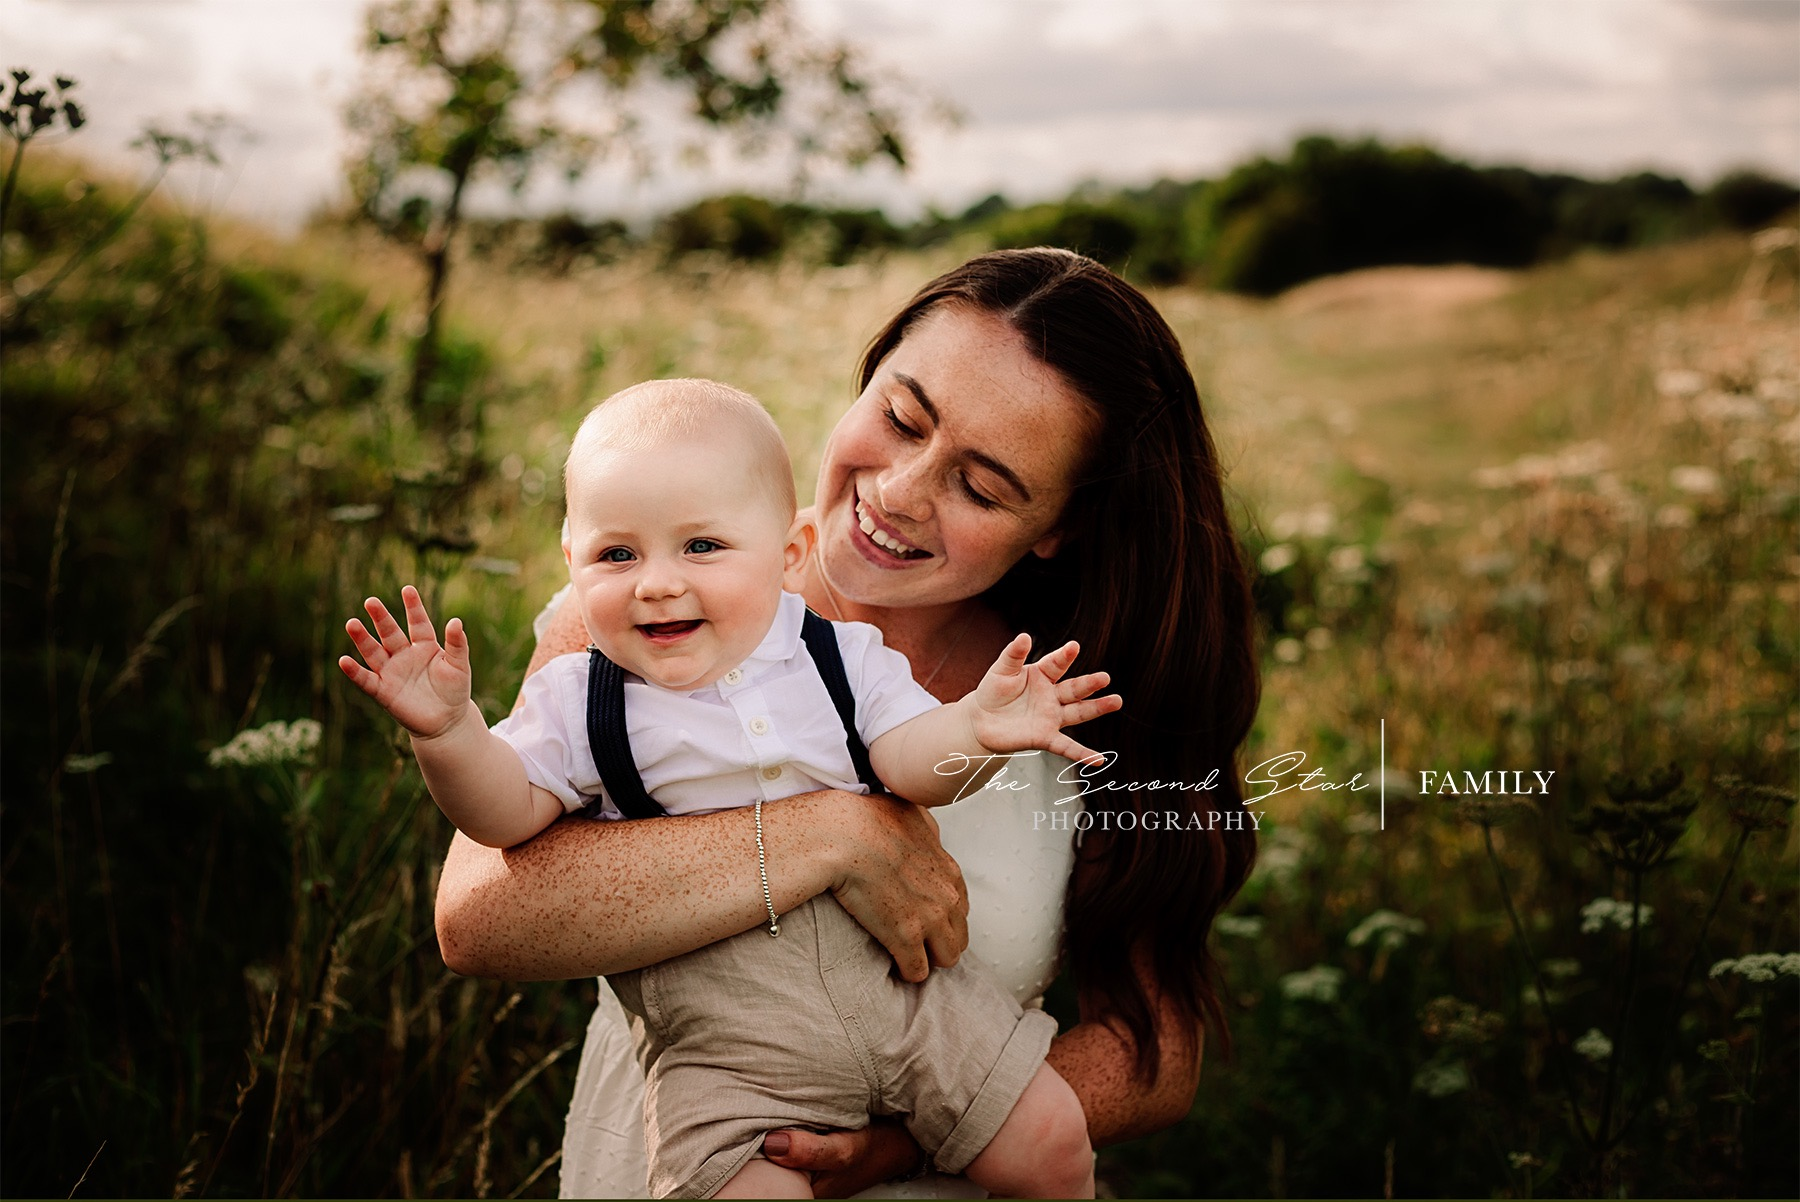 Family photoshoot in Bicester